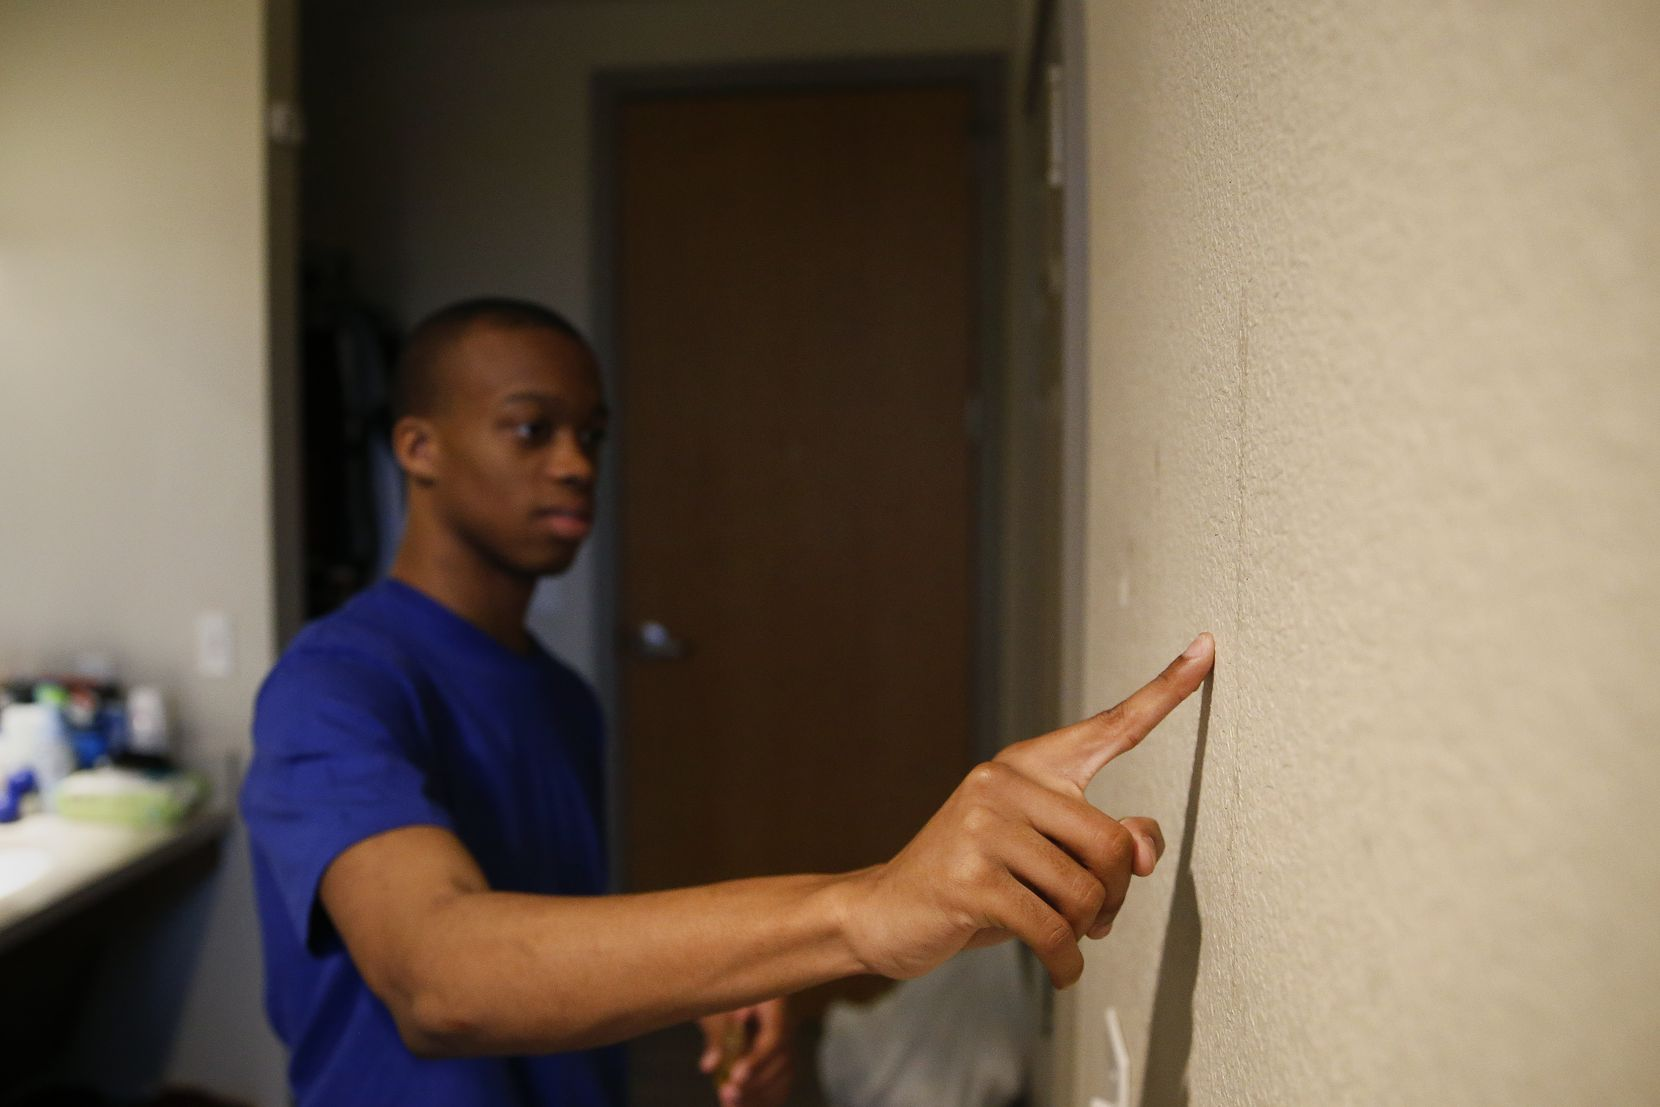 """Using anointed oil, Jaylon Miller makes the sign of the cross on the wall of his dorm room as a sign of God's protection at UNT-Dallas. """"It's something my mom taught me,"""" Miller said. """"I put a symbol of the cross on the wall for protection. Another cross on my forehead to keep my mind protected. You know, to keep anything from going in or out that isn't of God."""""""